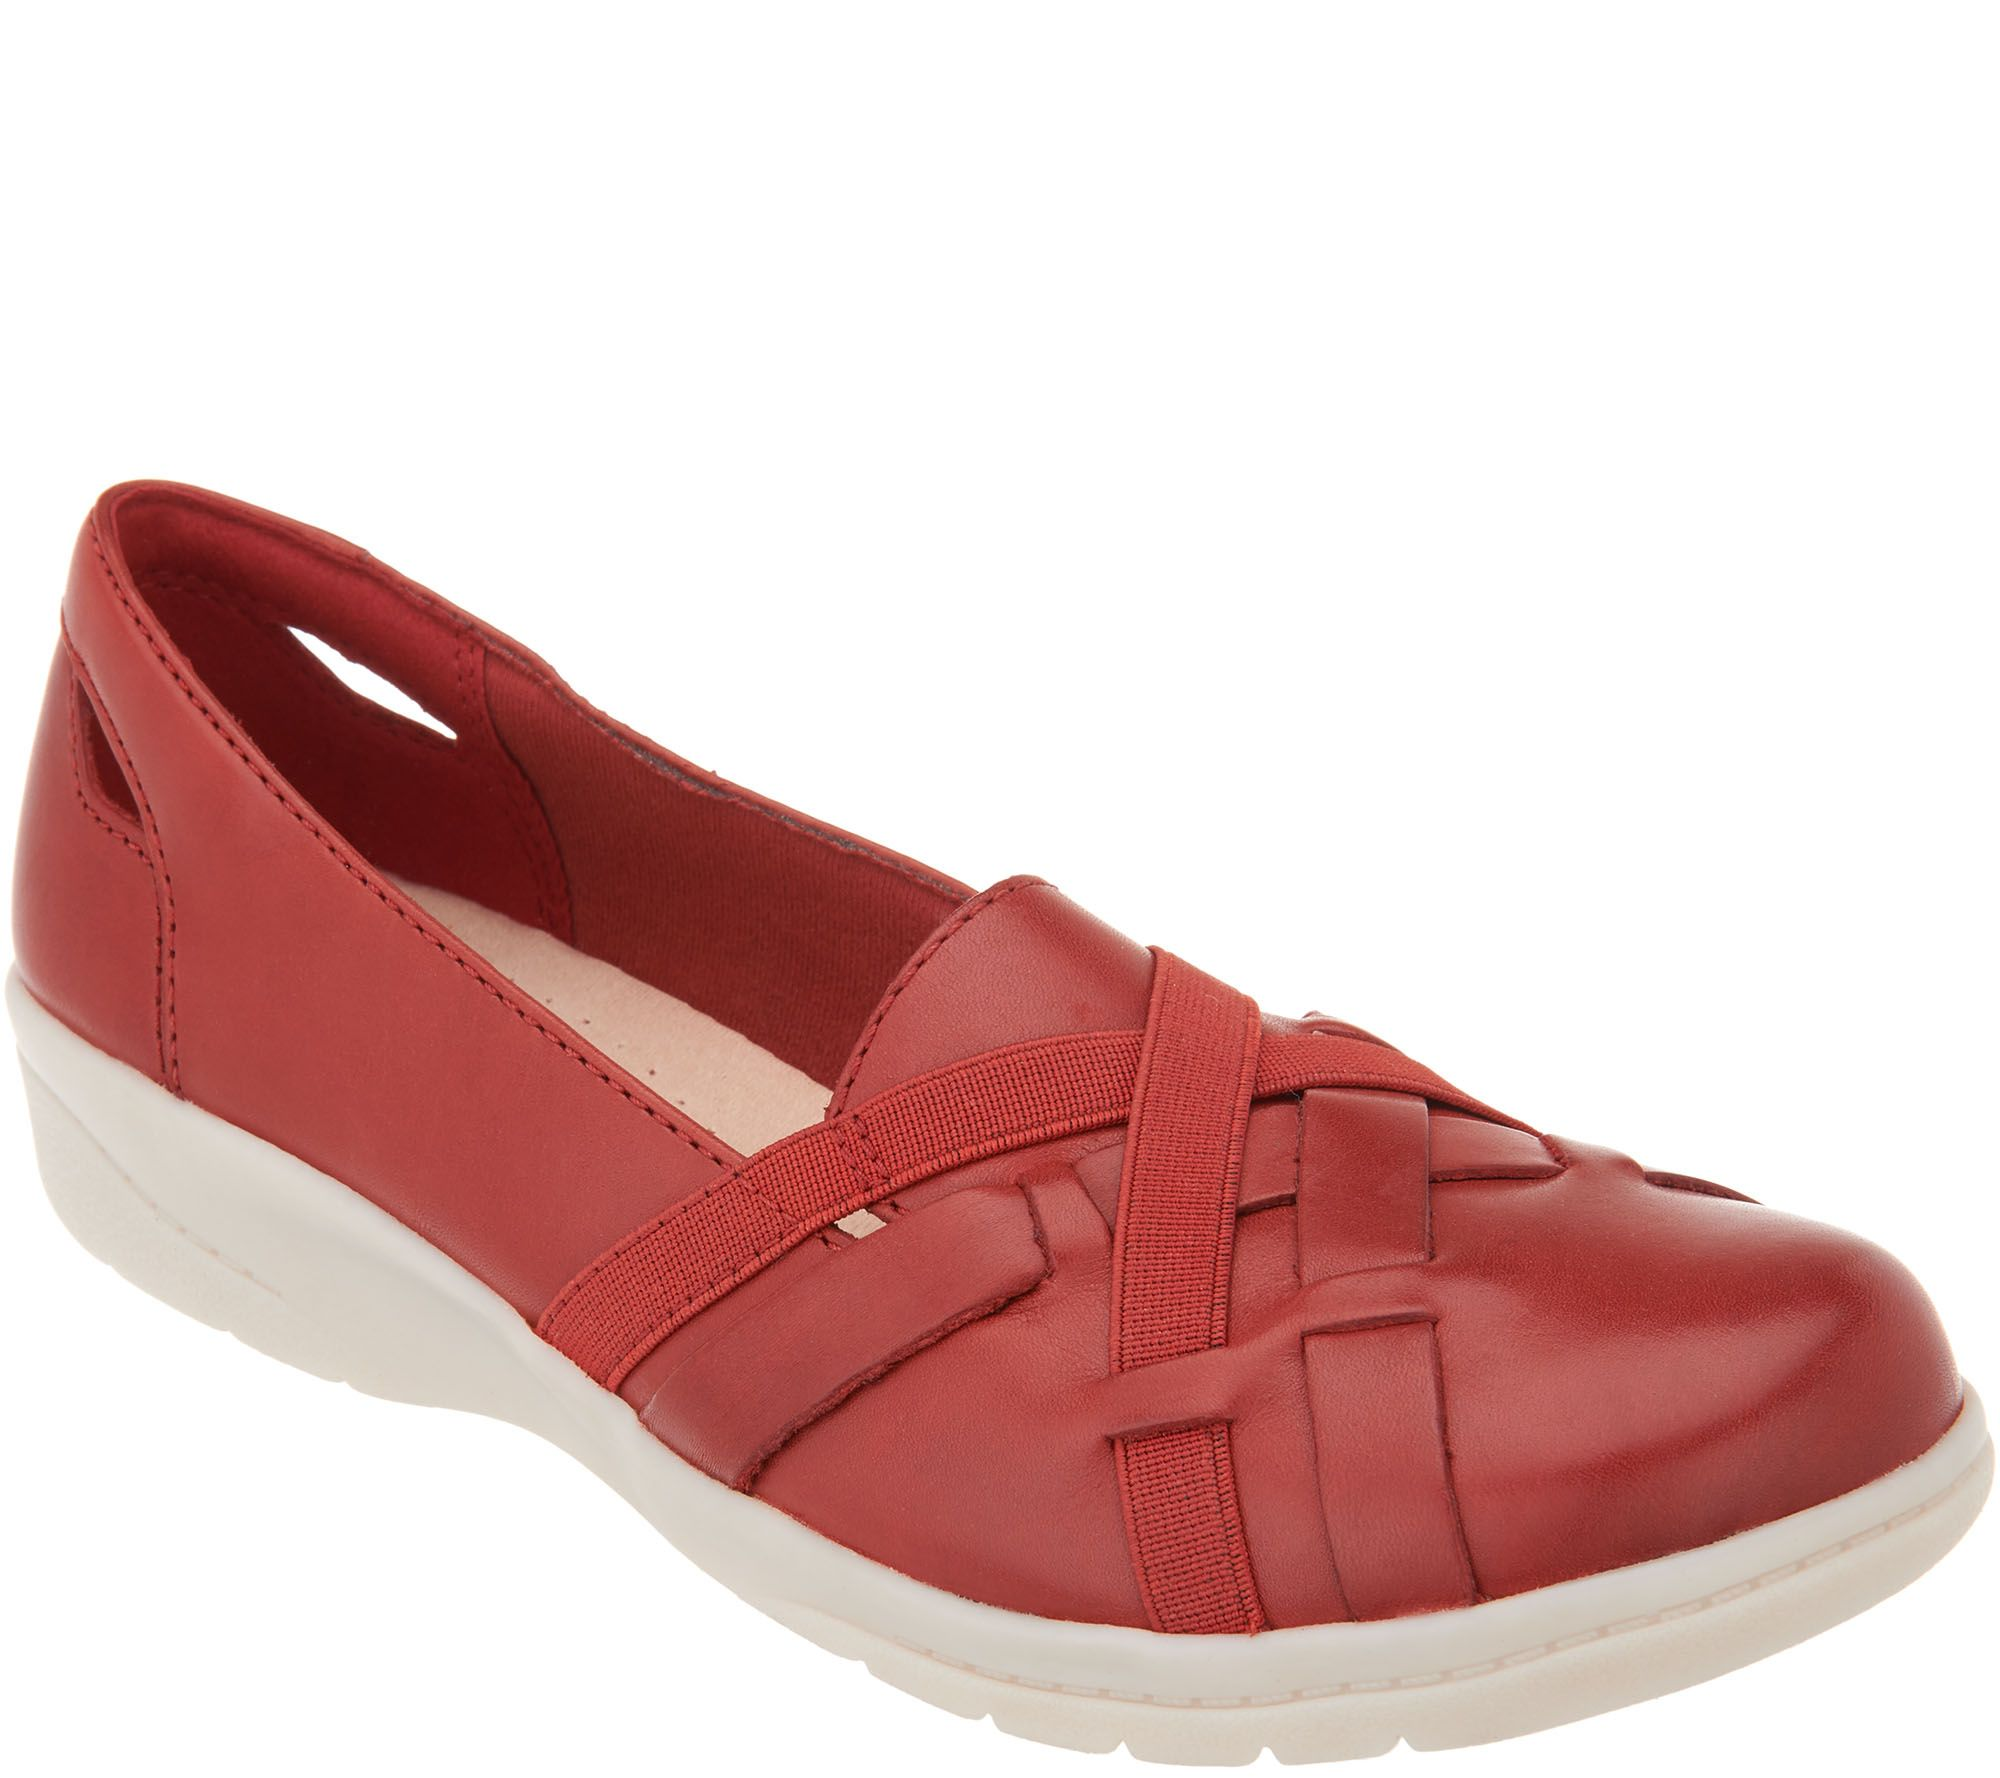 054776381698 Clarks Leather Slip-On Shoes with Woven Detail - Cheyn Creek - Page 1 — QVC .com